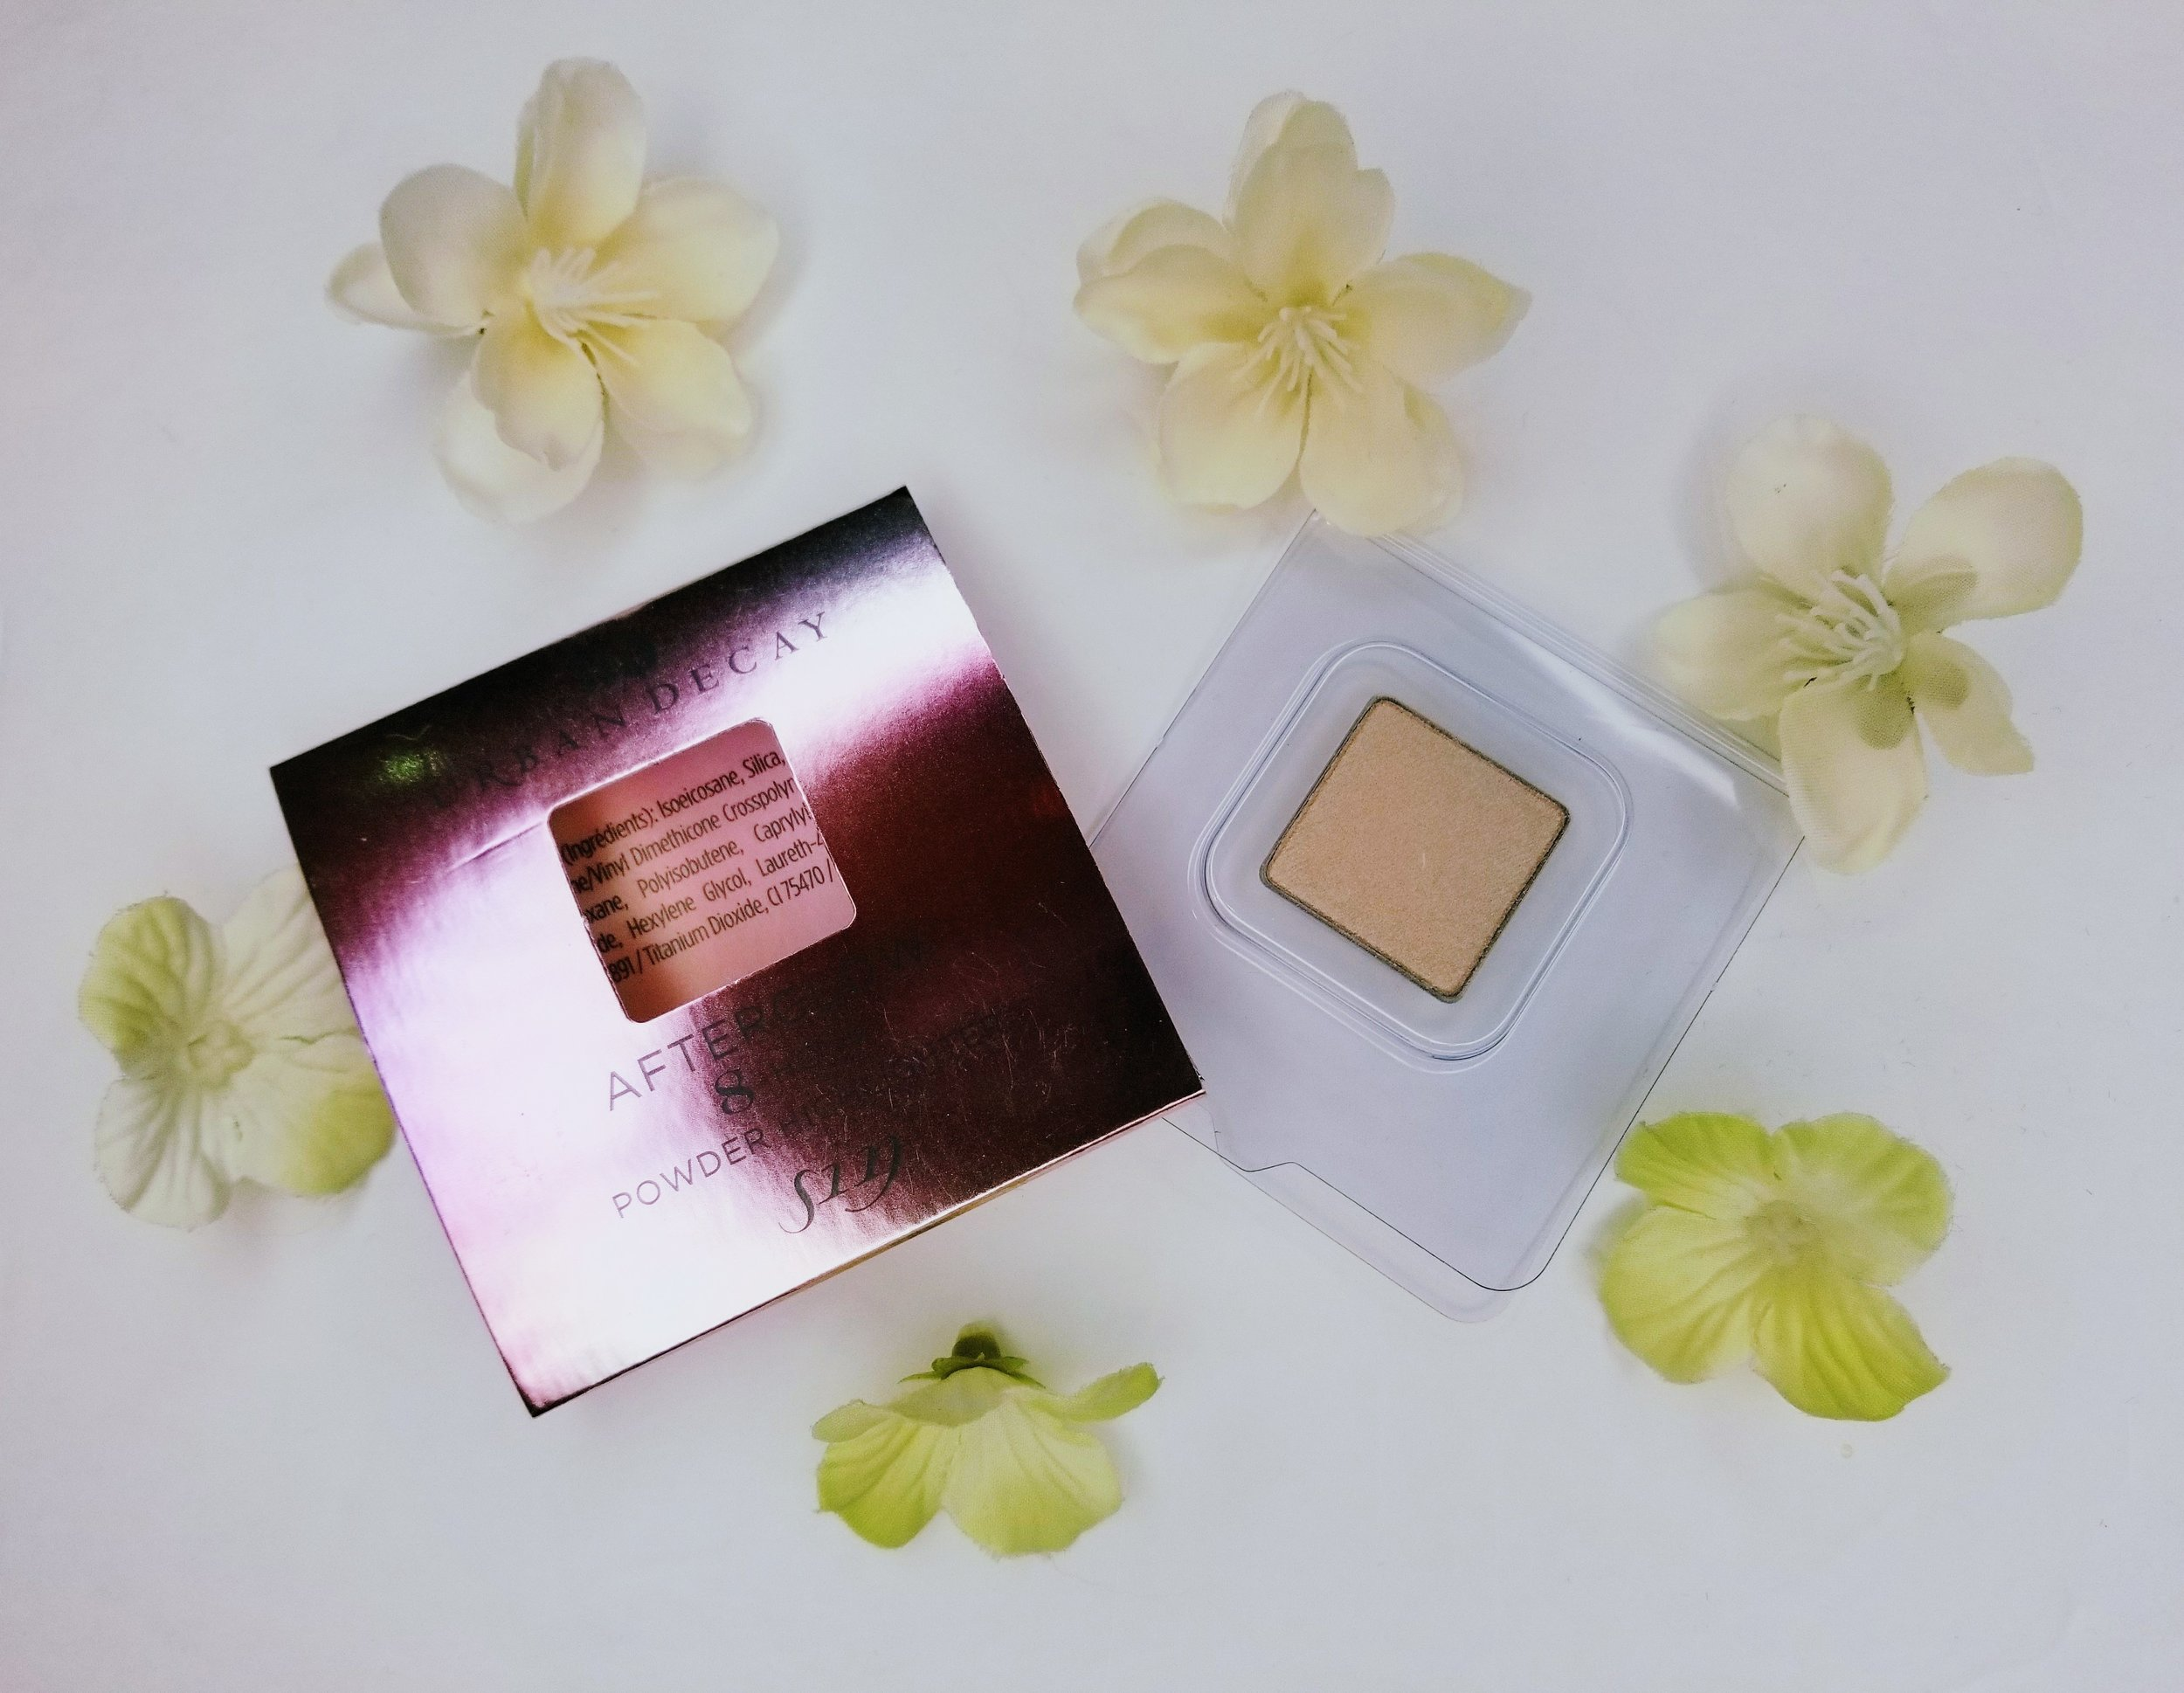 A photo of Urban Decay highlighter in golden shade.